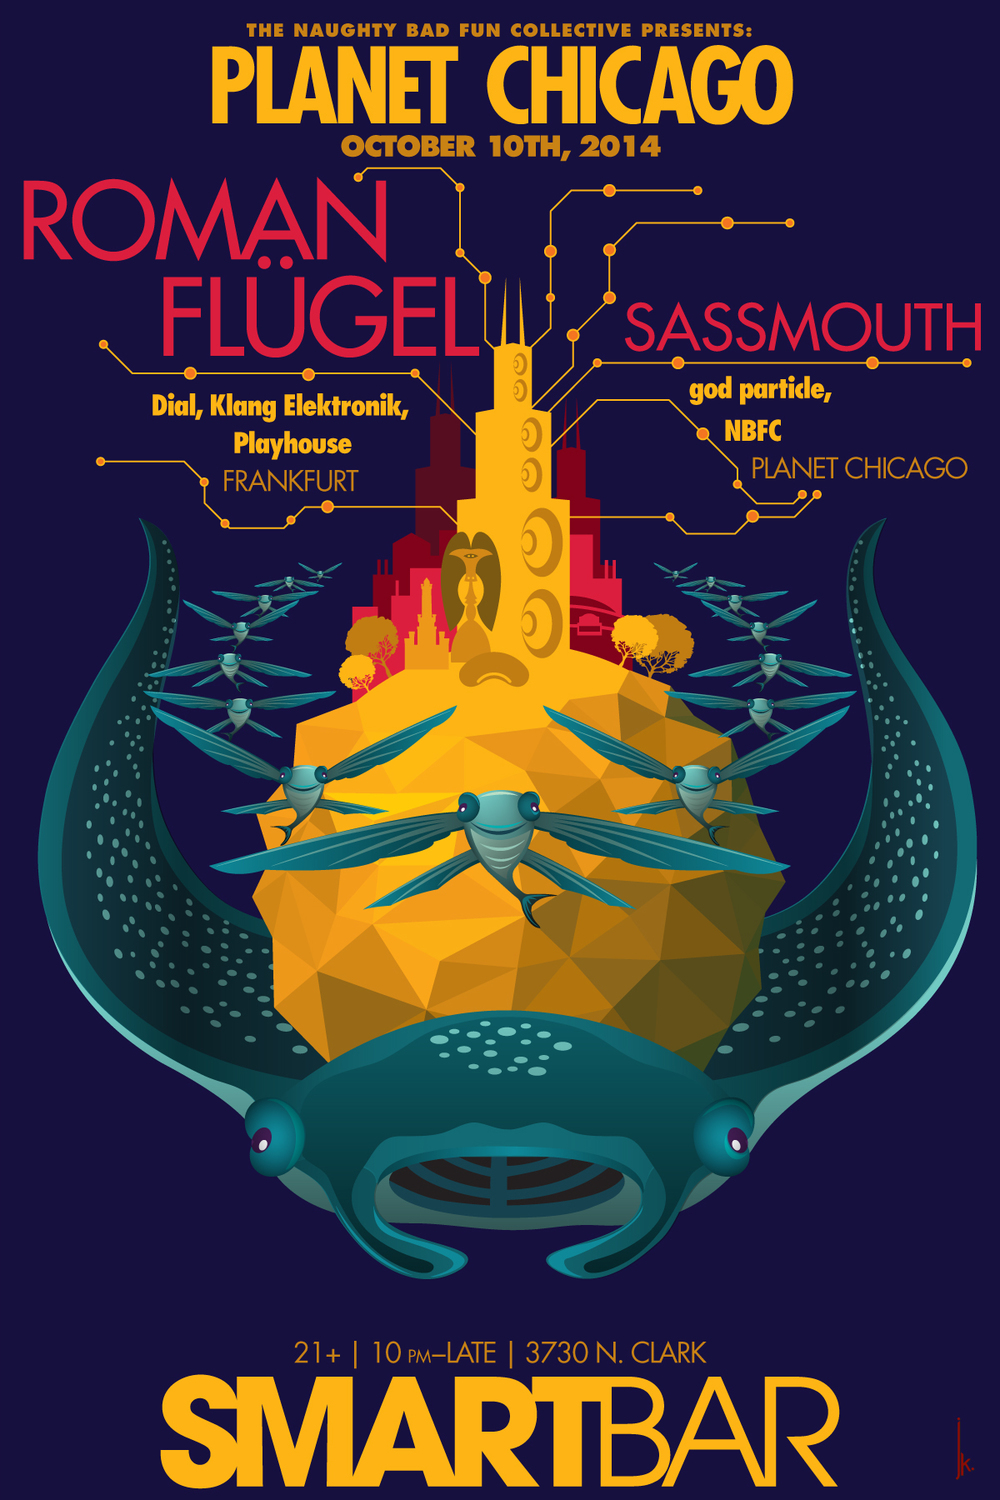 PC_OCT10_Flugel_flyer_web.jpg